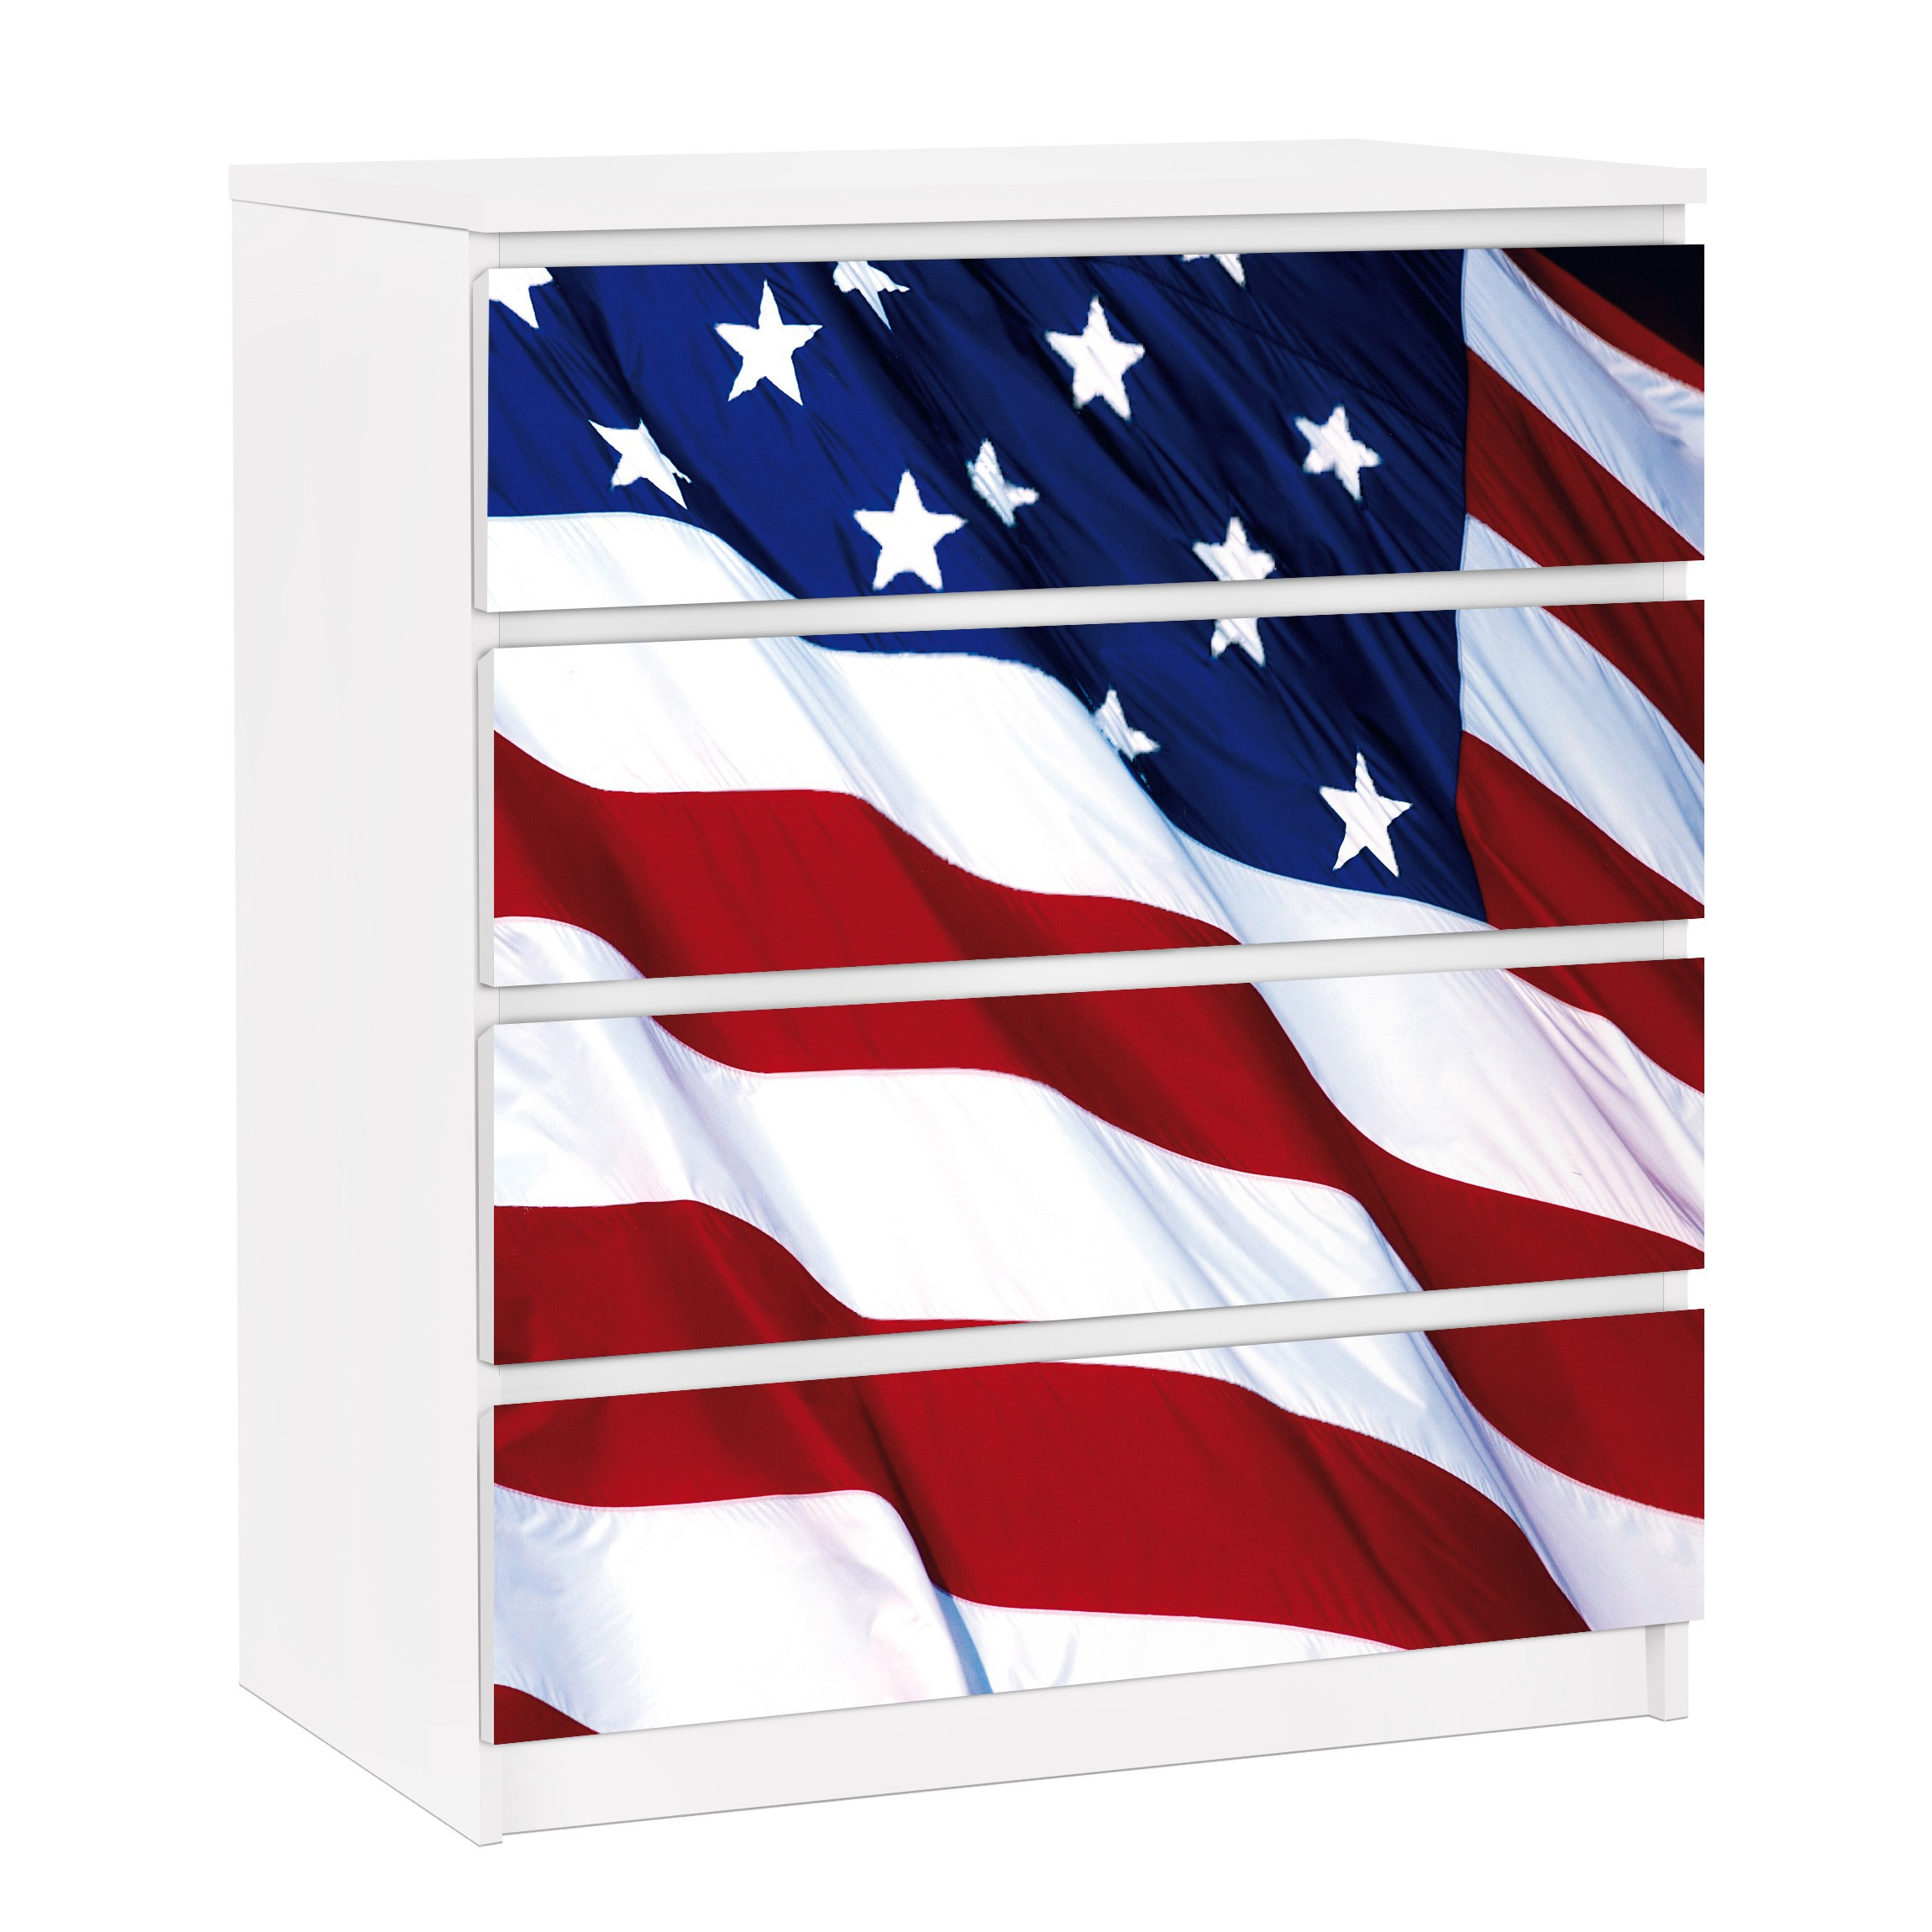 m belfolie f r ikea malm kommode selbstklebende folie stars and stripes. Black Bedroom Furniture Sets. Home Design Ideas